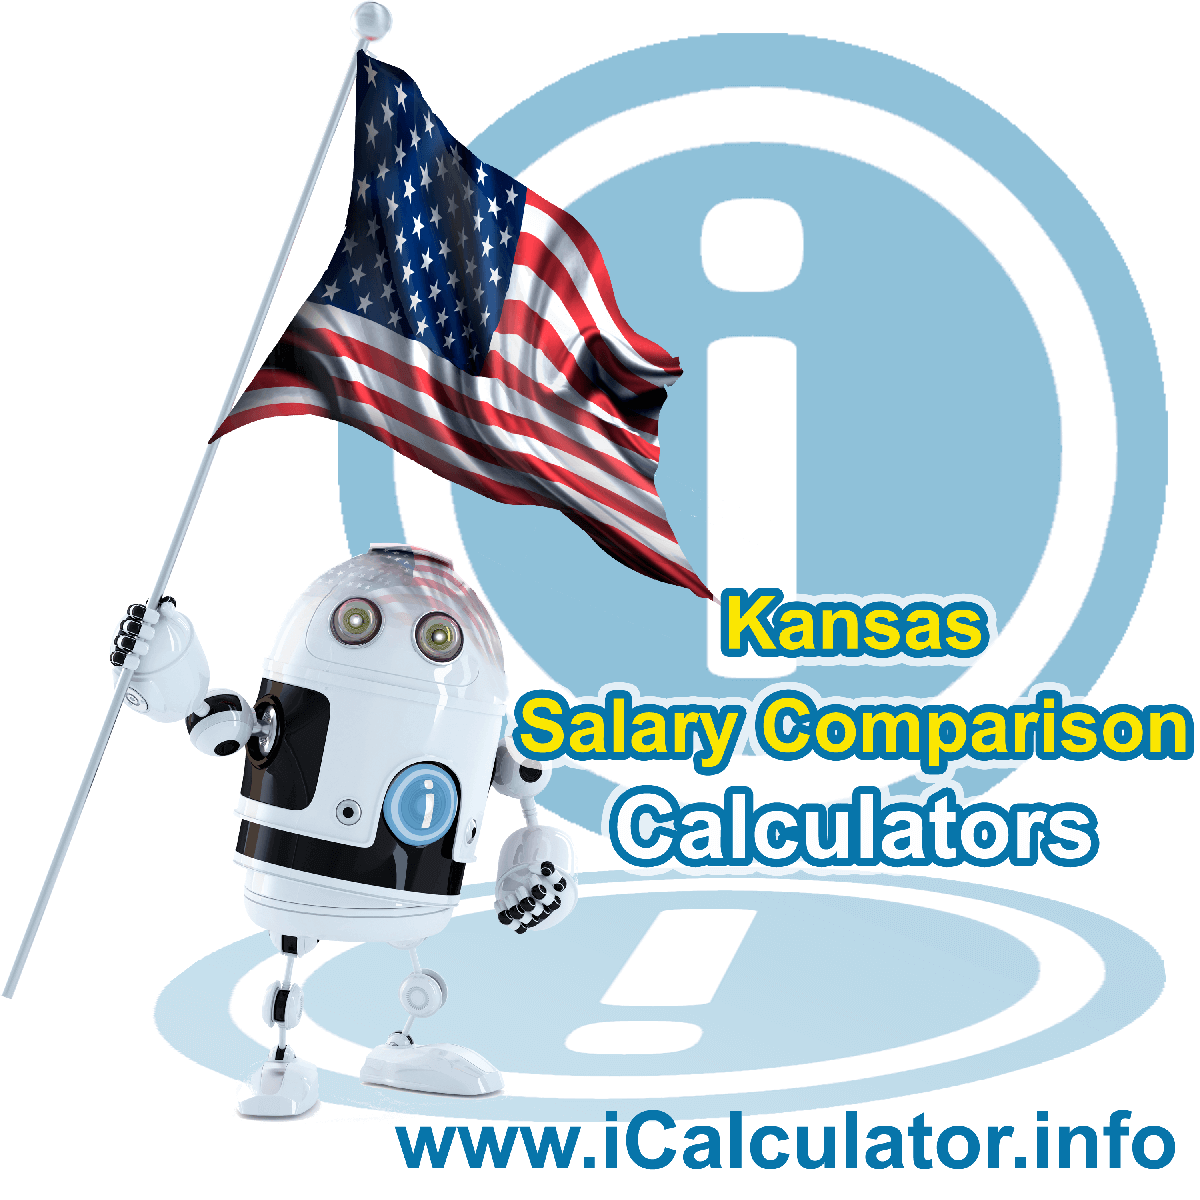 Kansas Salary Comparison Calculator 2022 | iCalculator™ | The Kansas Salary Comparison Calculator allows you to quickly calculate and compare upto 6 salaries in Kansas or compare with other states for the 2022 tax year and historical tax years.